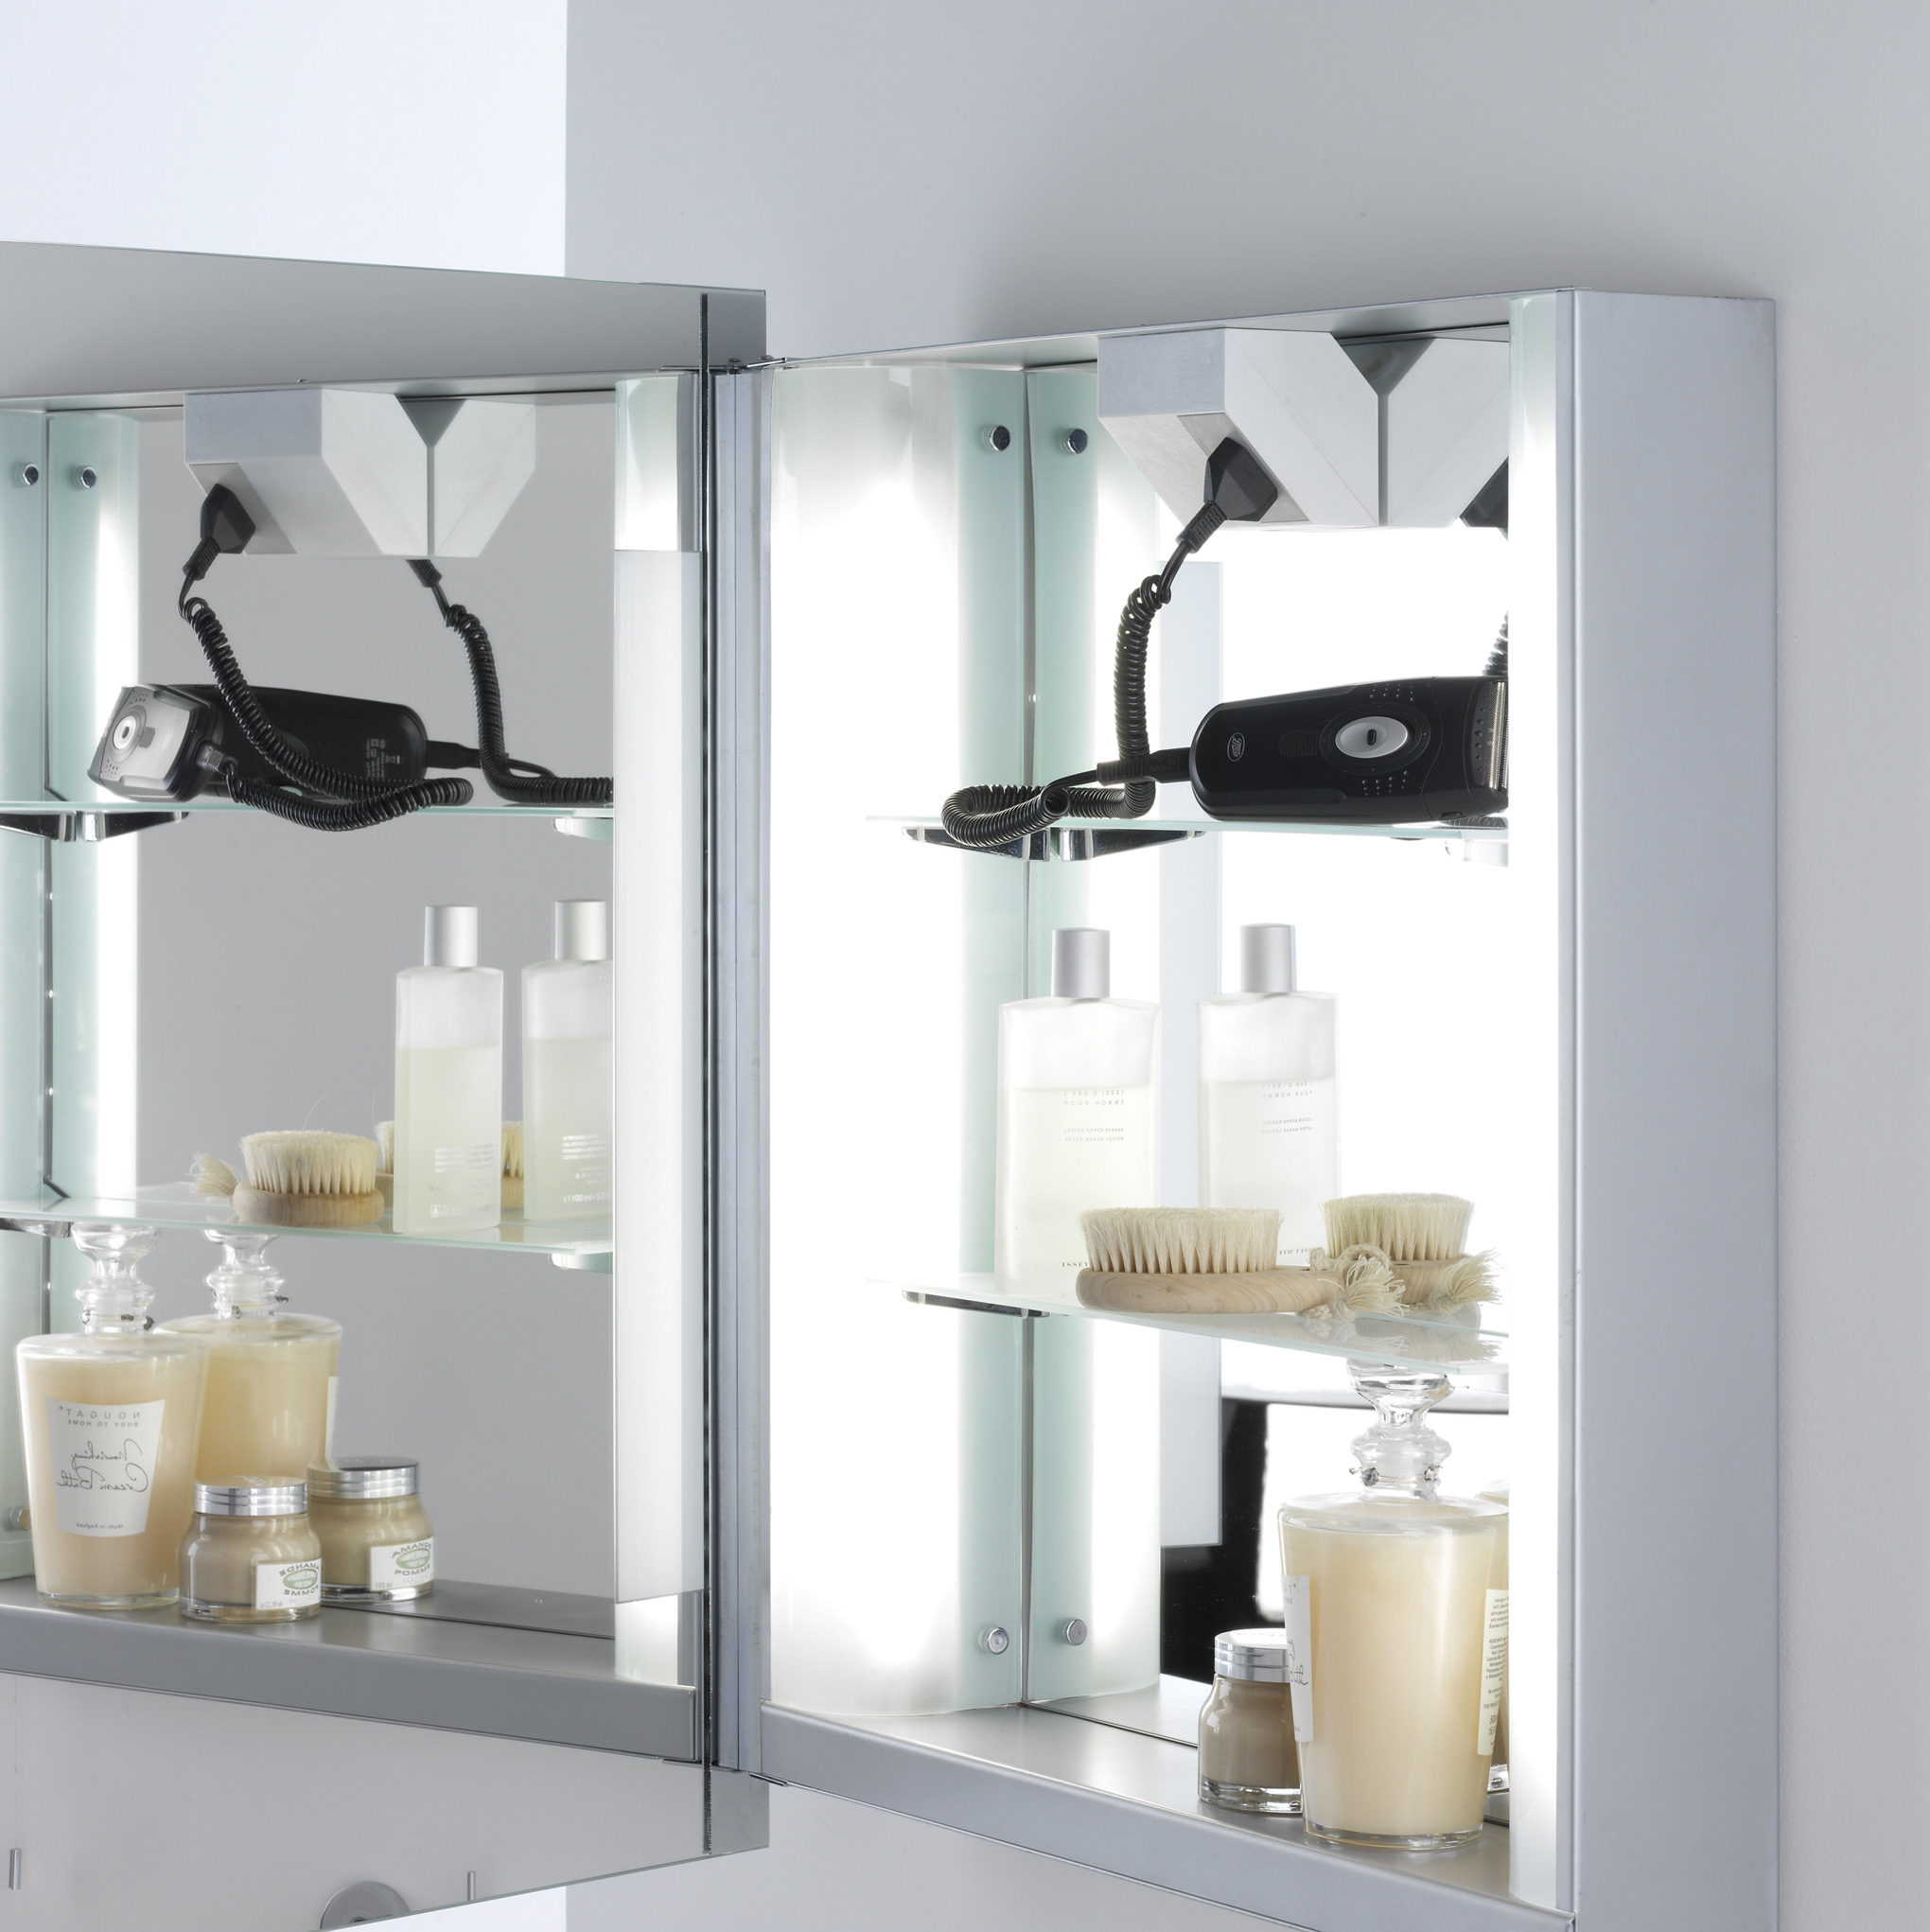 Bathroom Cabinet Mirrors With Shaver Sockets